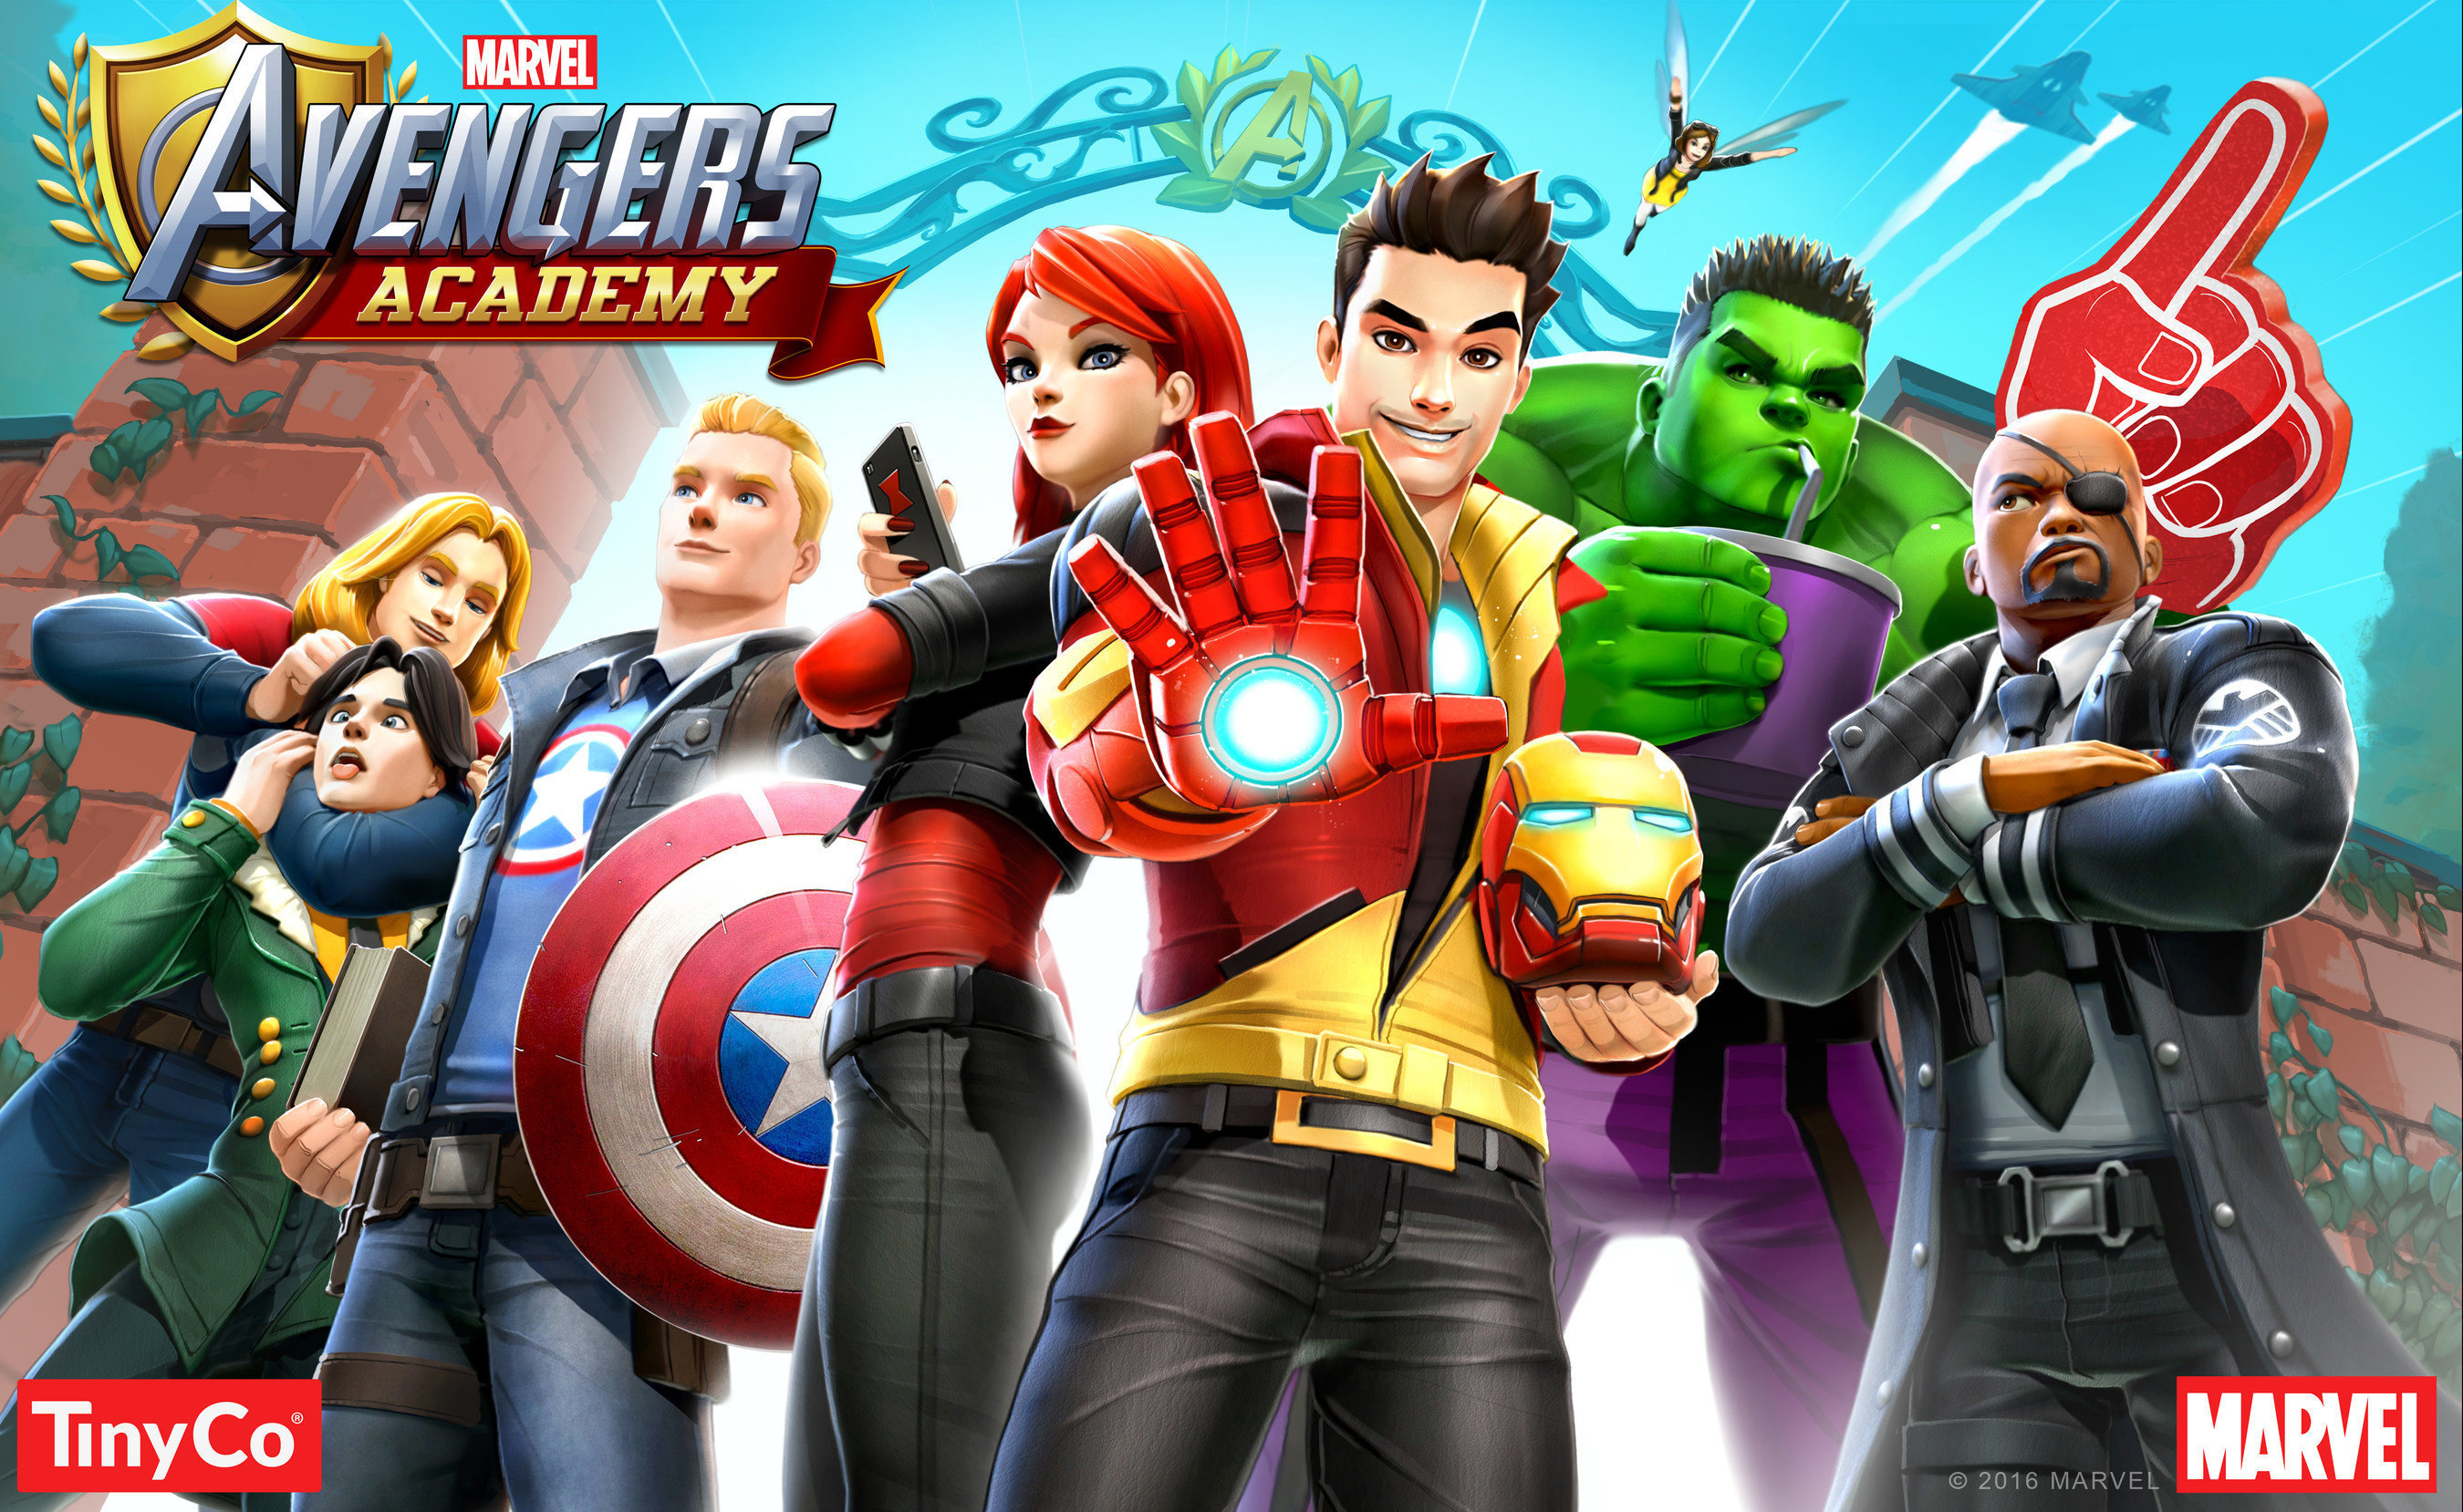 Super Hero School Is In Session With The Release Of 'MARVEL Avengers Academy' On The App Store And Google Play